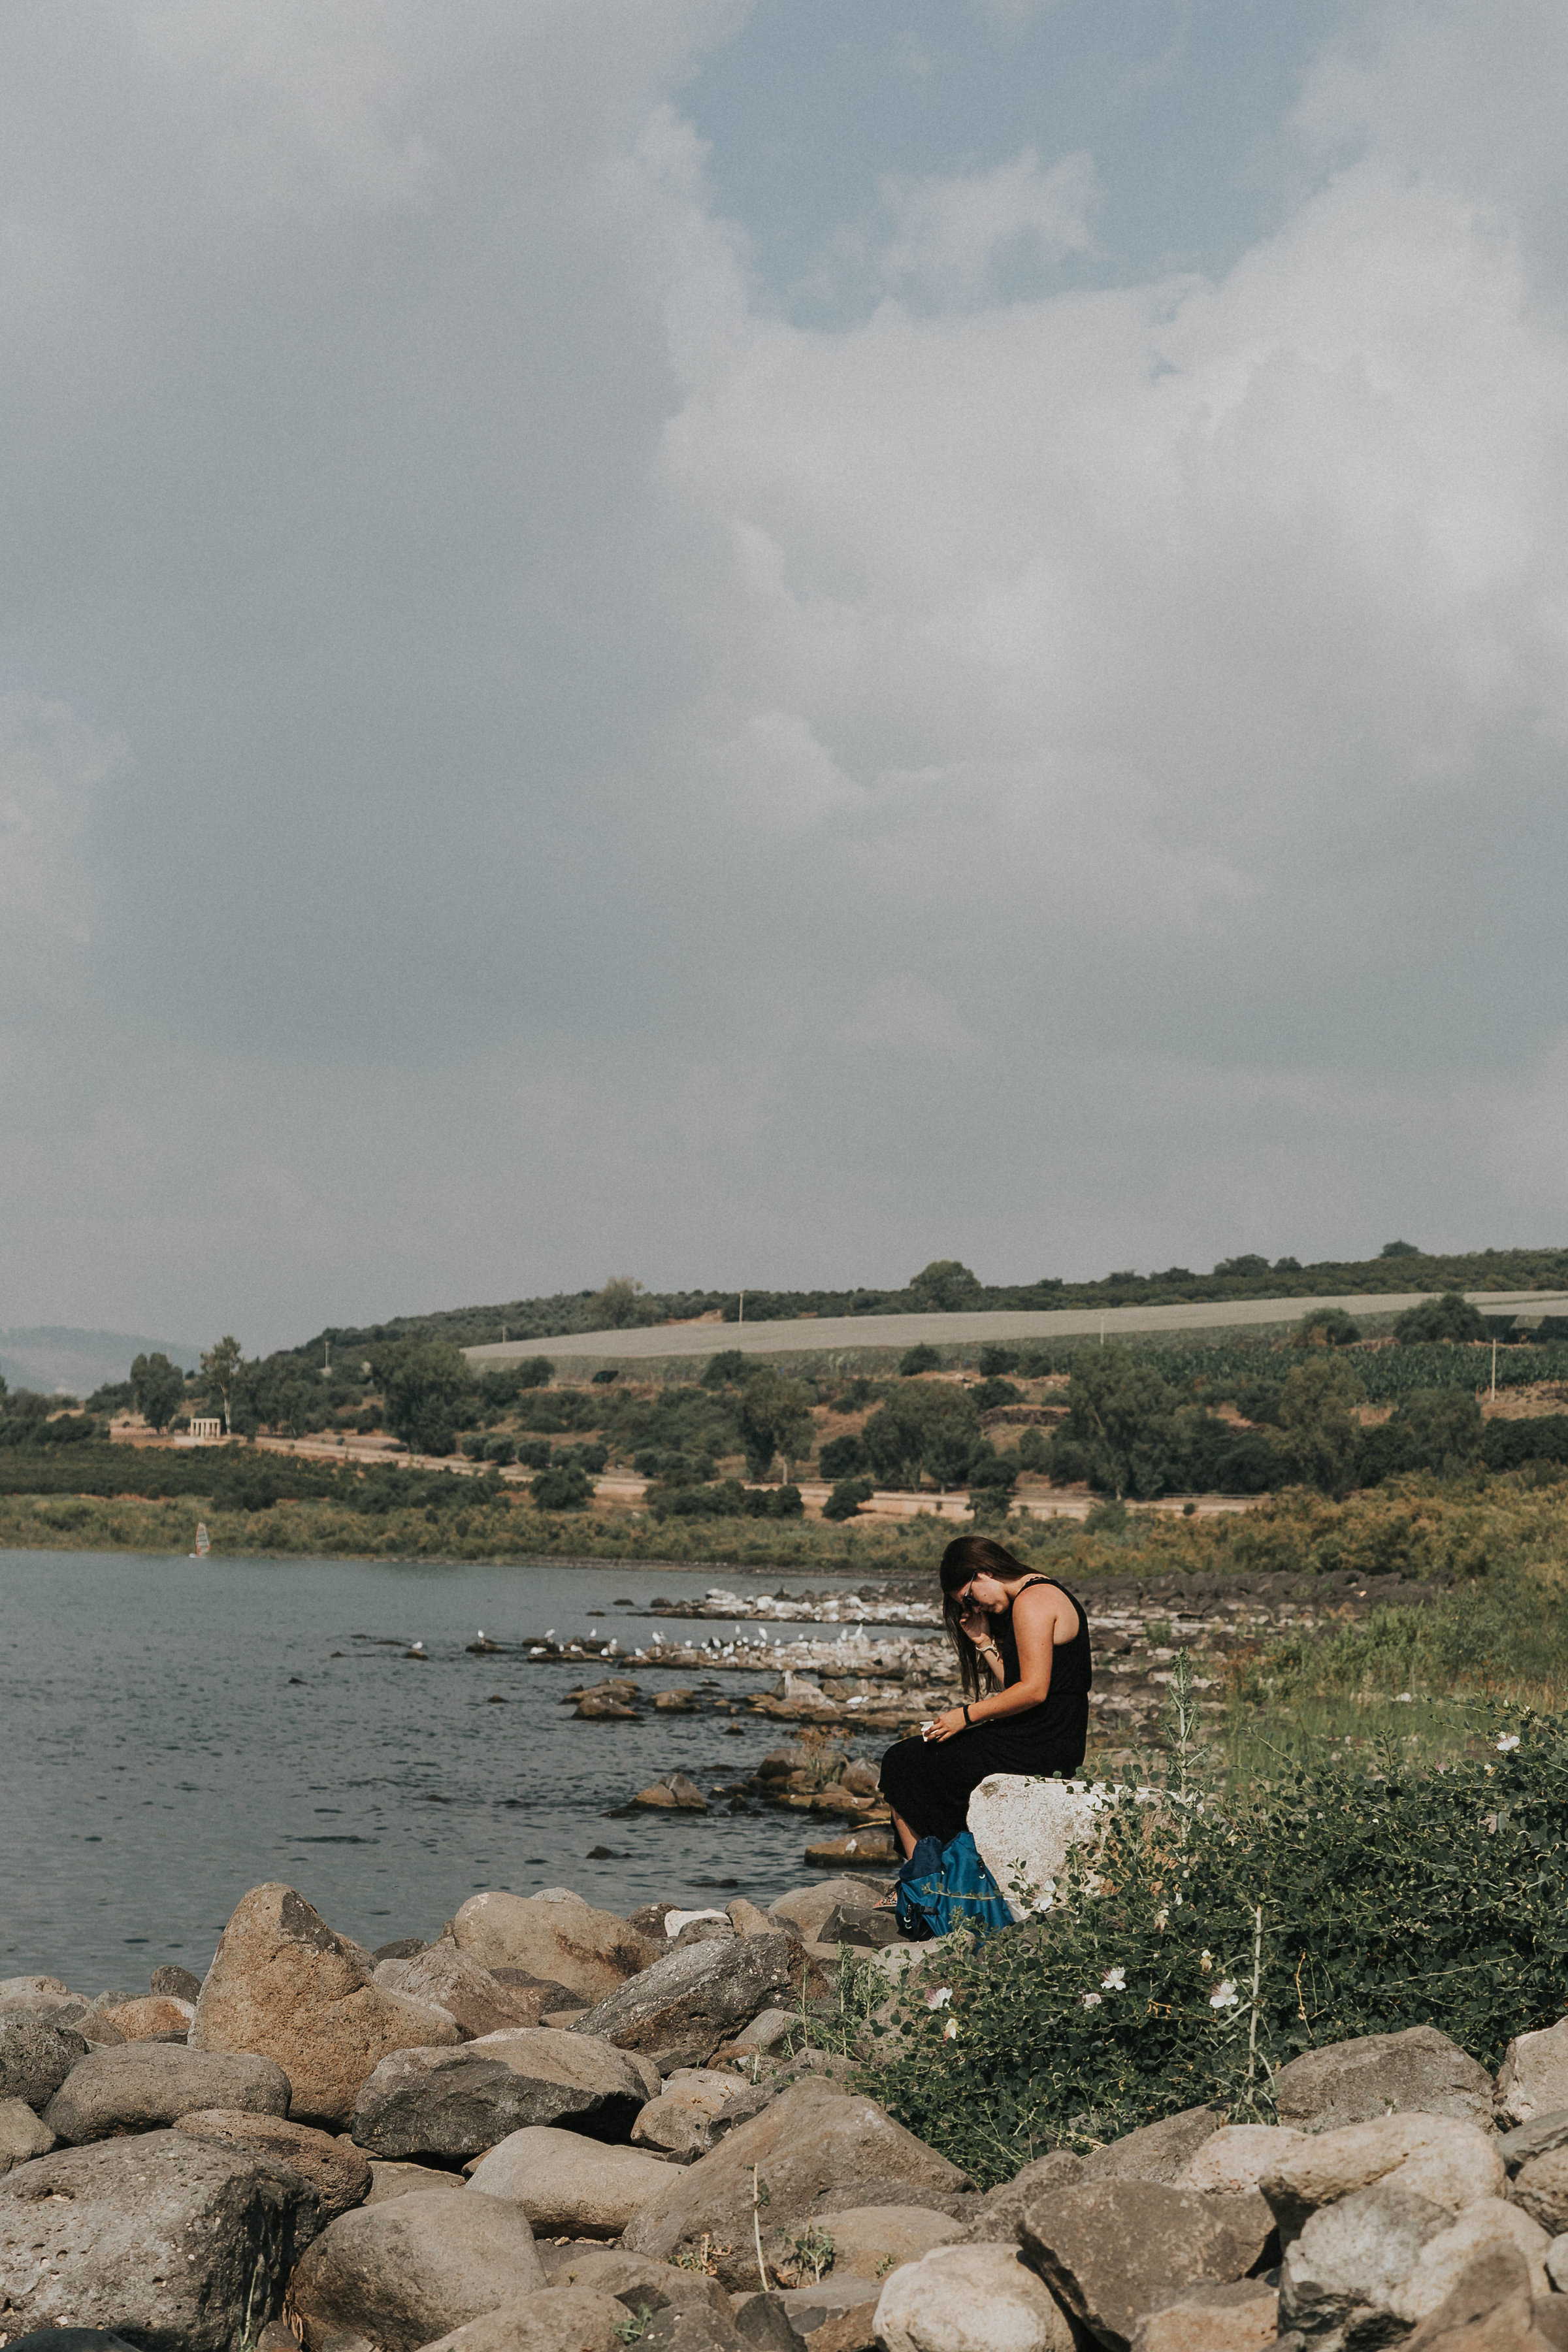 Quiet time on the Sea of Galilee, a cherished time.